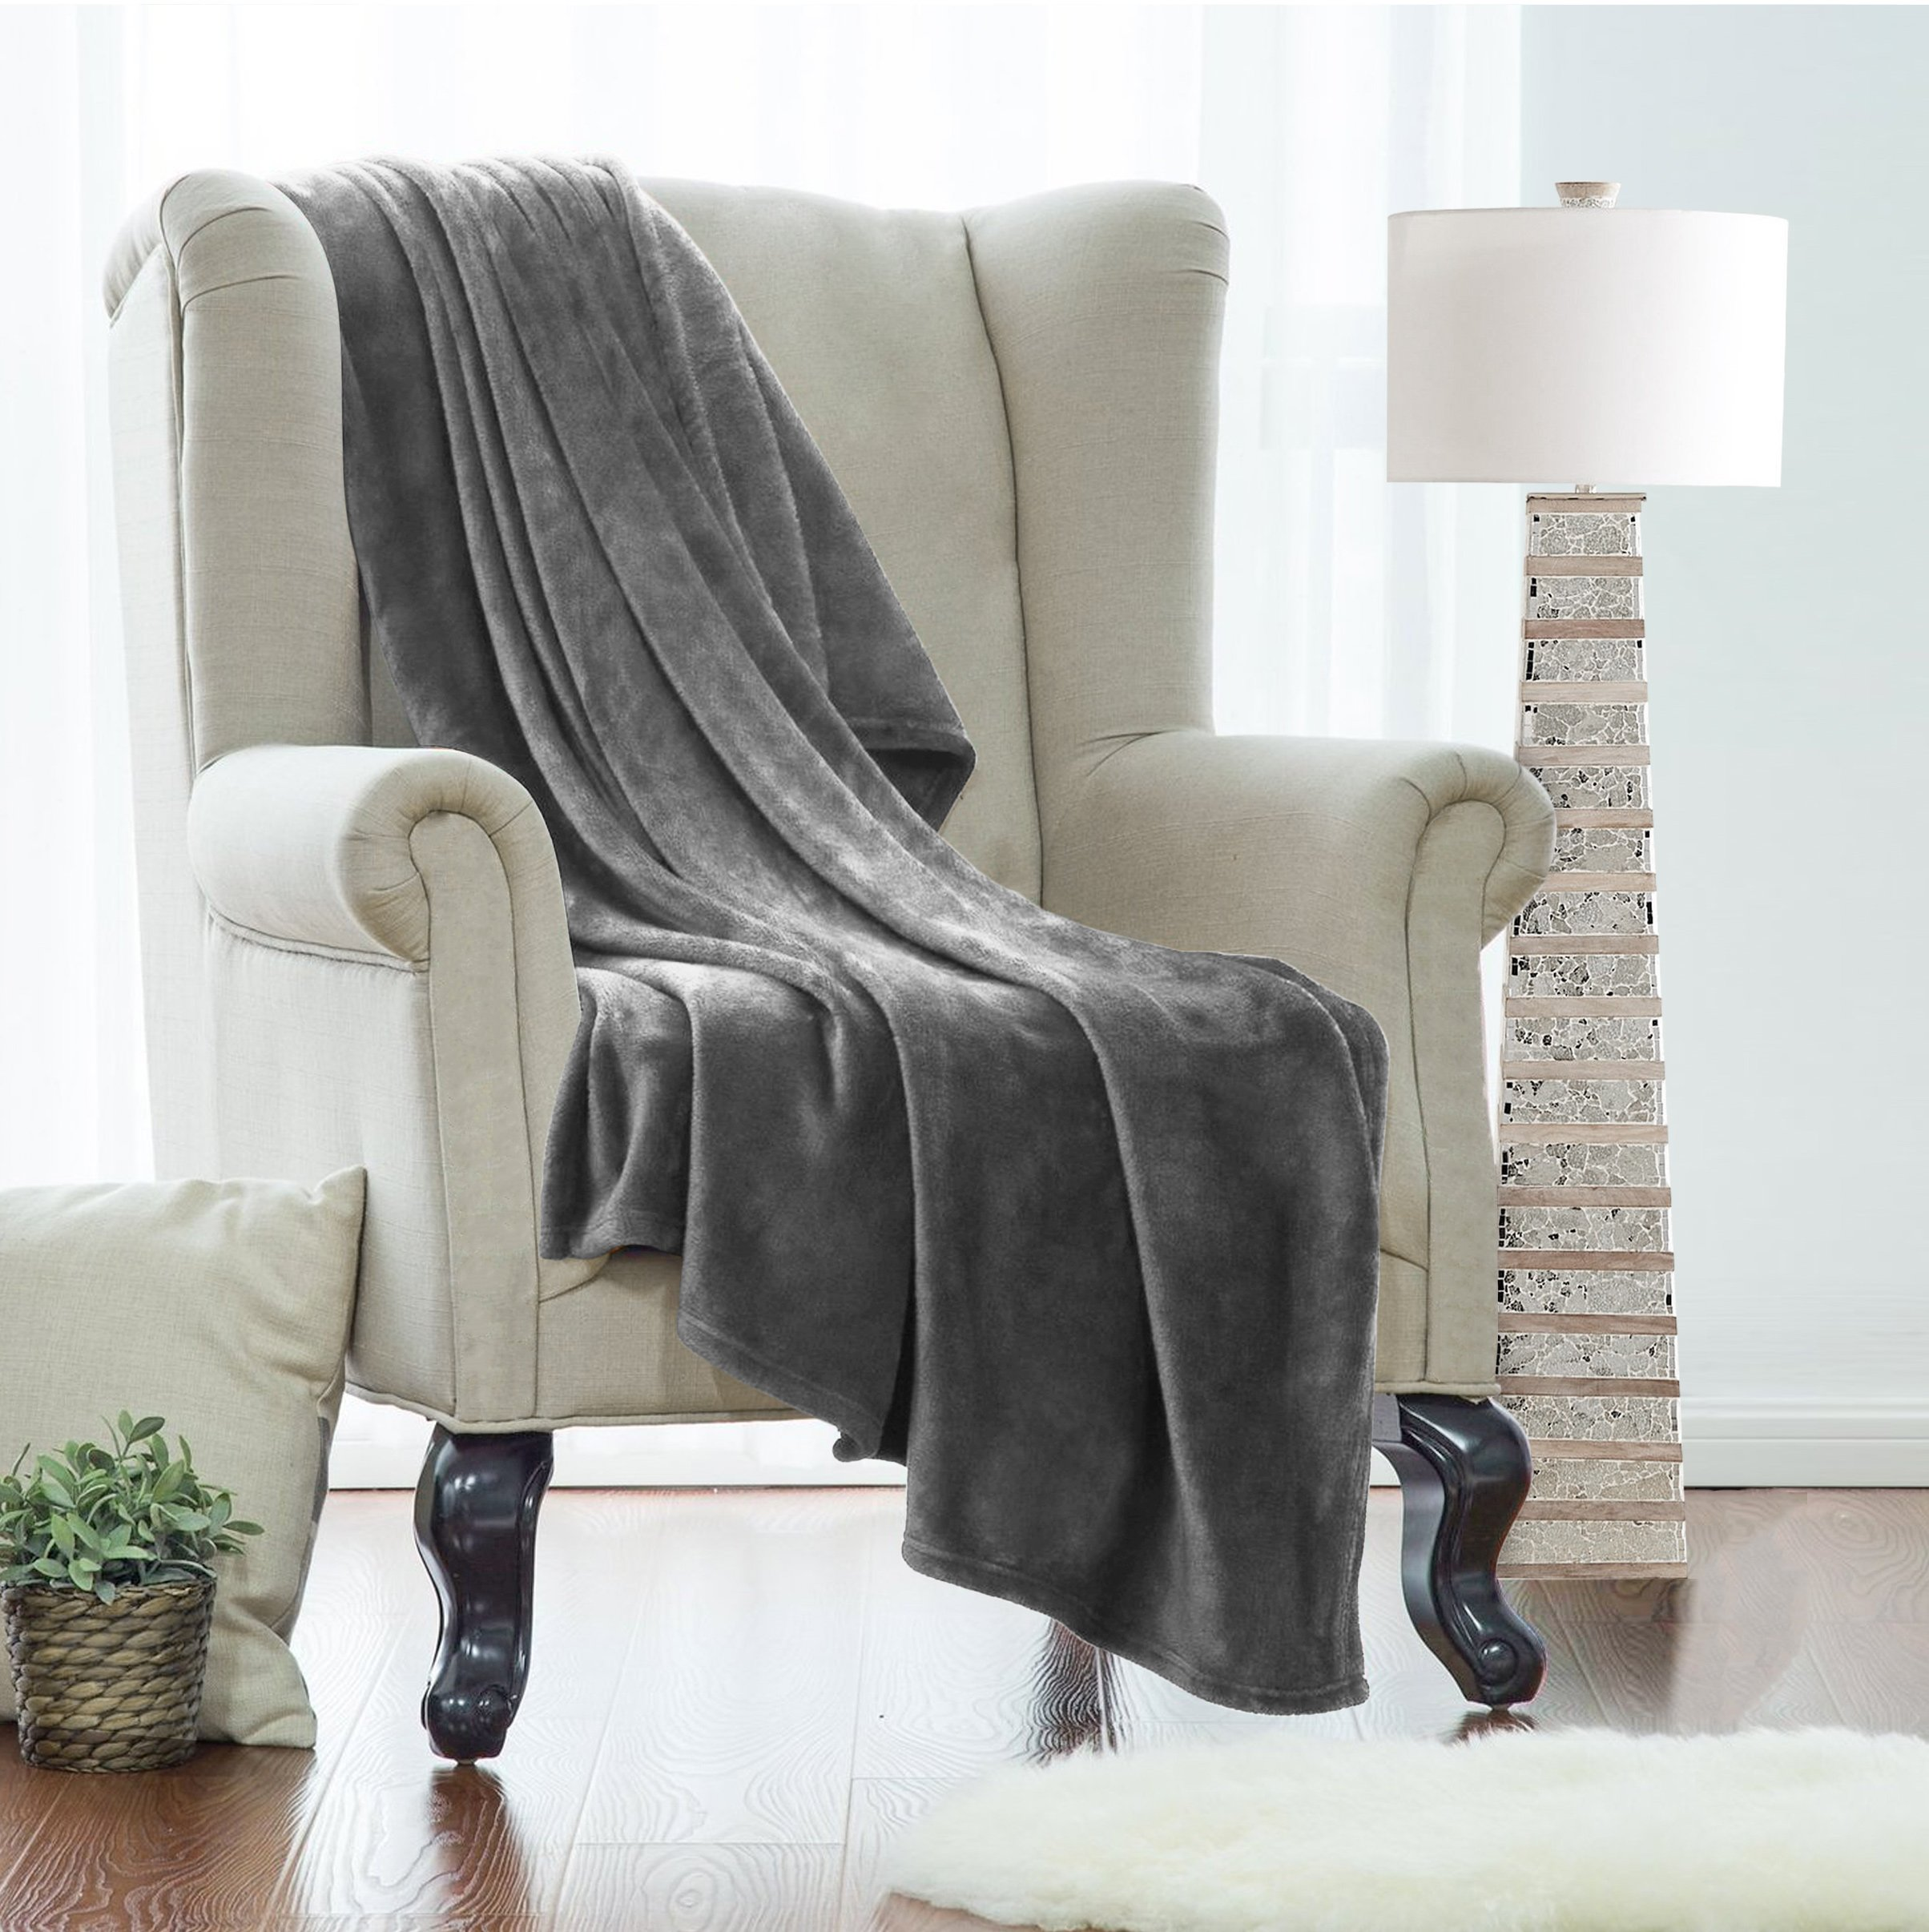 Clara Clark King Fleece Super Soft Warm Fuzzy Plush Couch Blanket, Extra Soft Brush Fabric, Lightweight Super Warm Bed Blanket (102-Inch-By-90-Inch) Charcoal Stone Gray